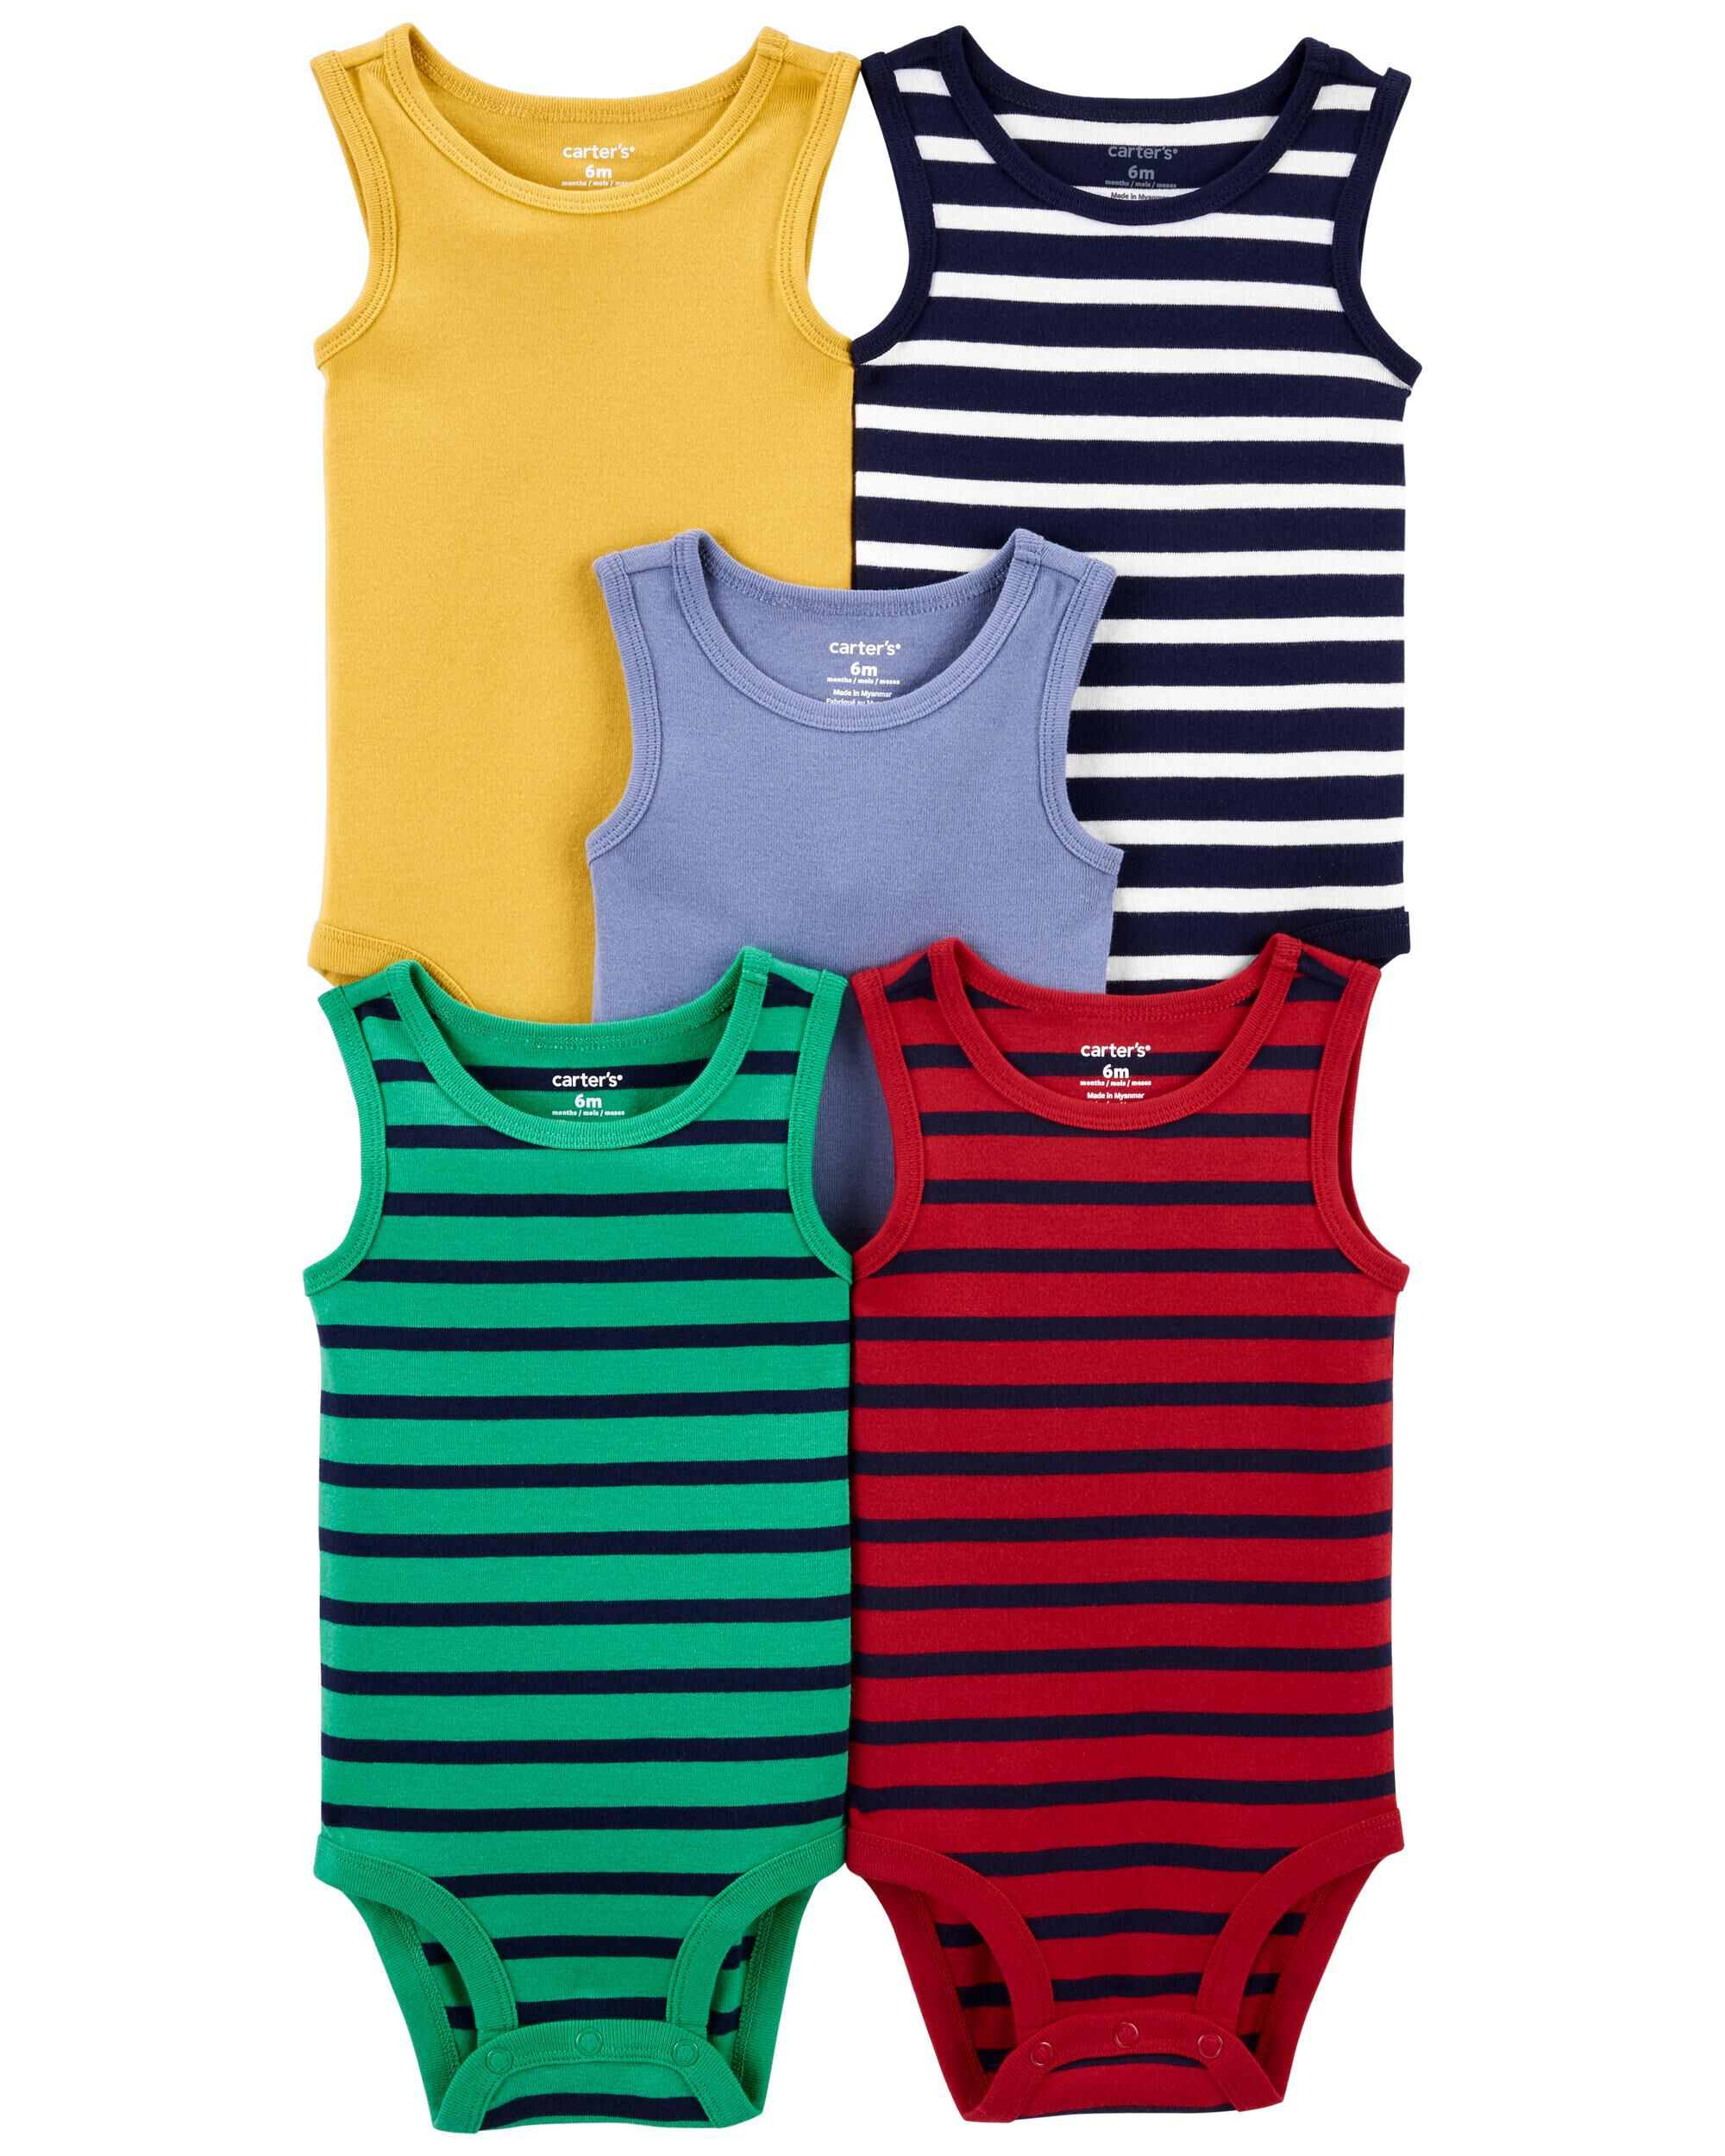 Carters 5-Pack Tank Bodysuits